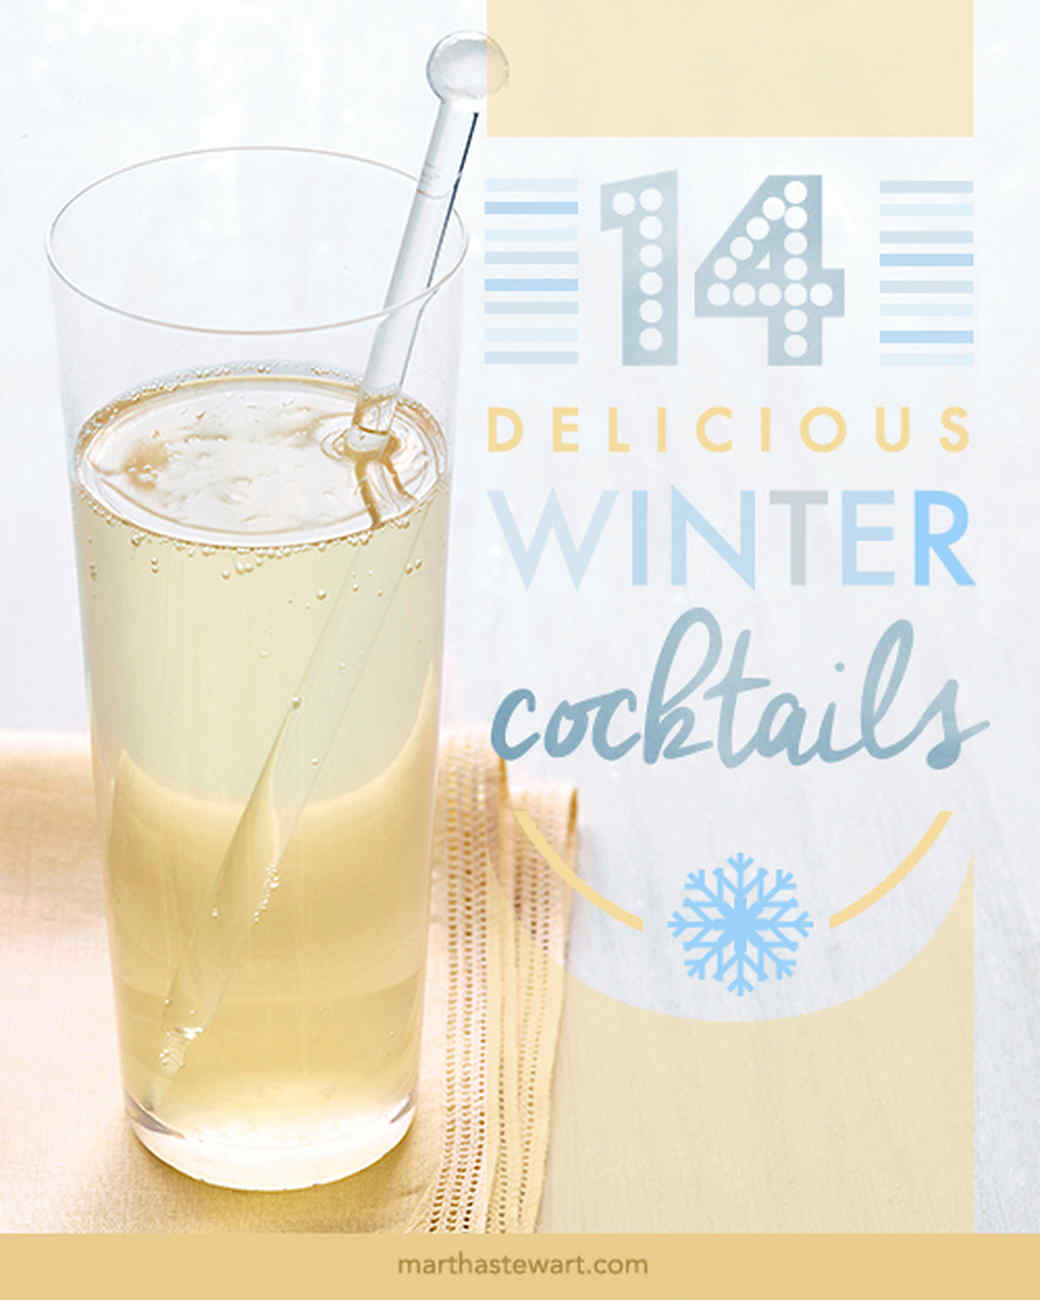 14-delicious-winter-cocktails-0115.jpg